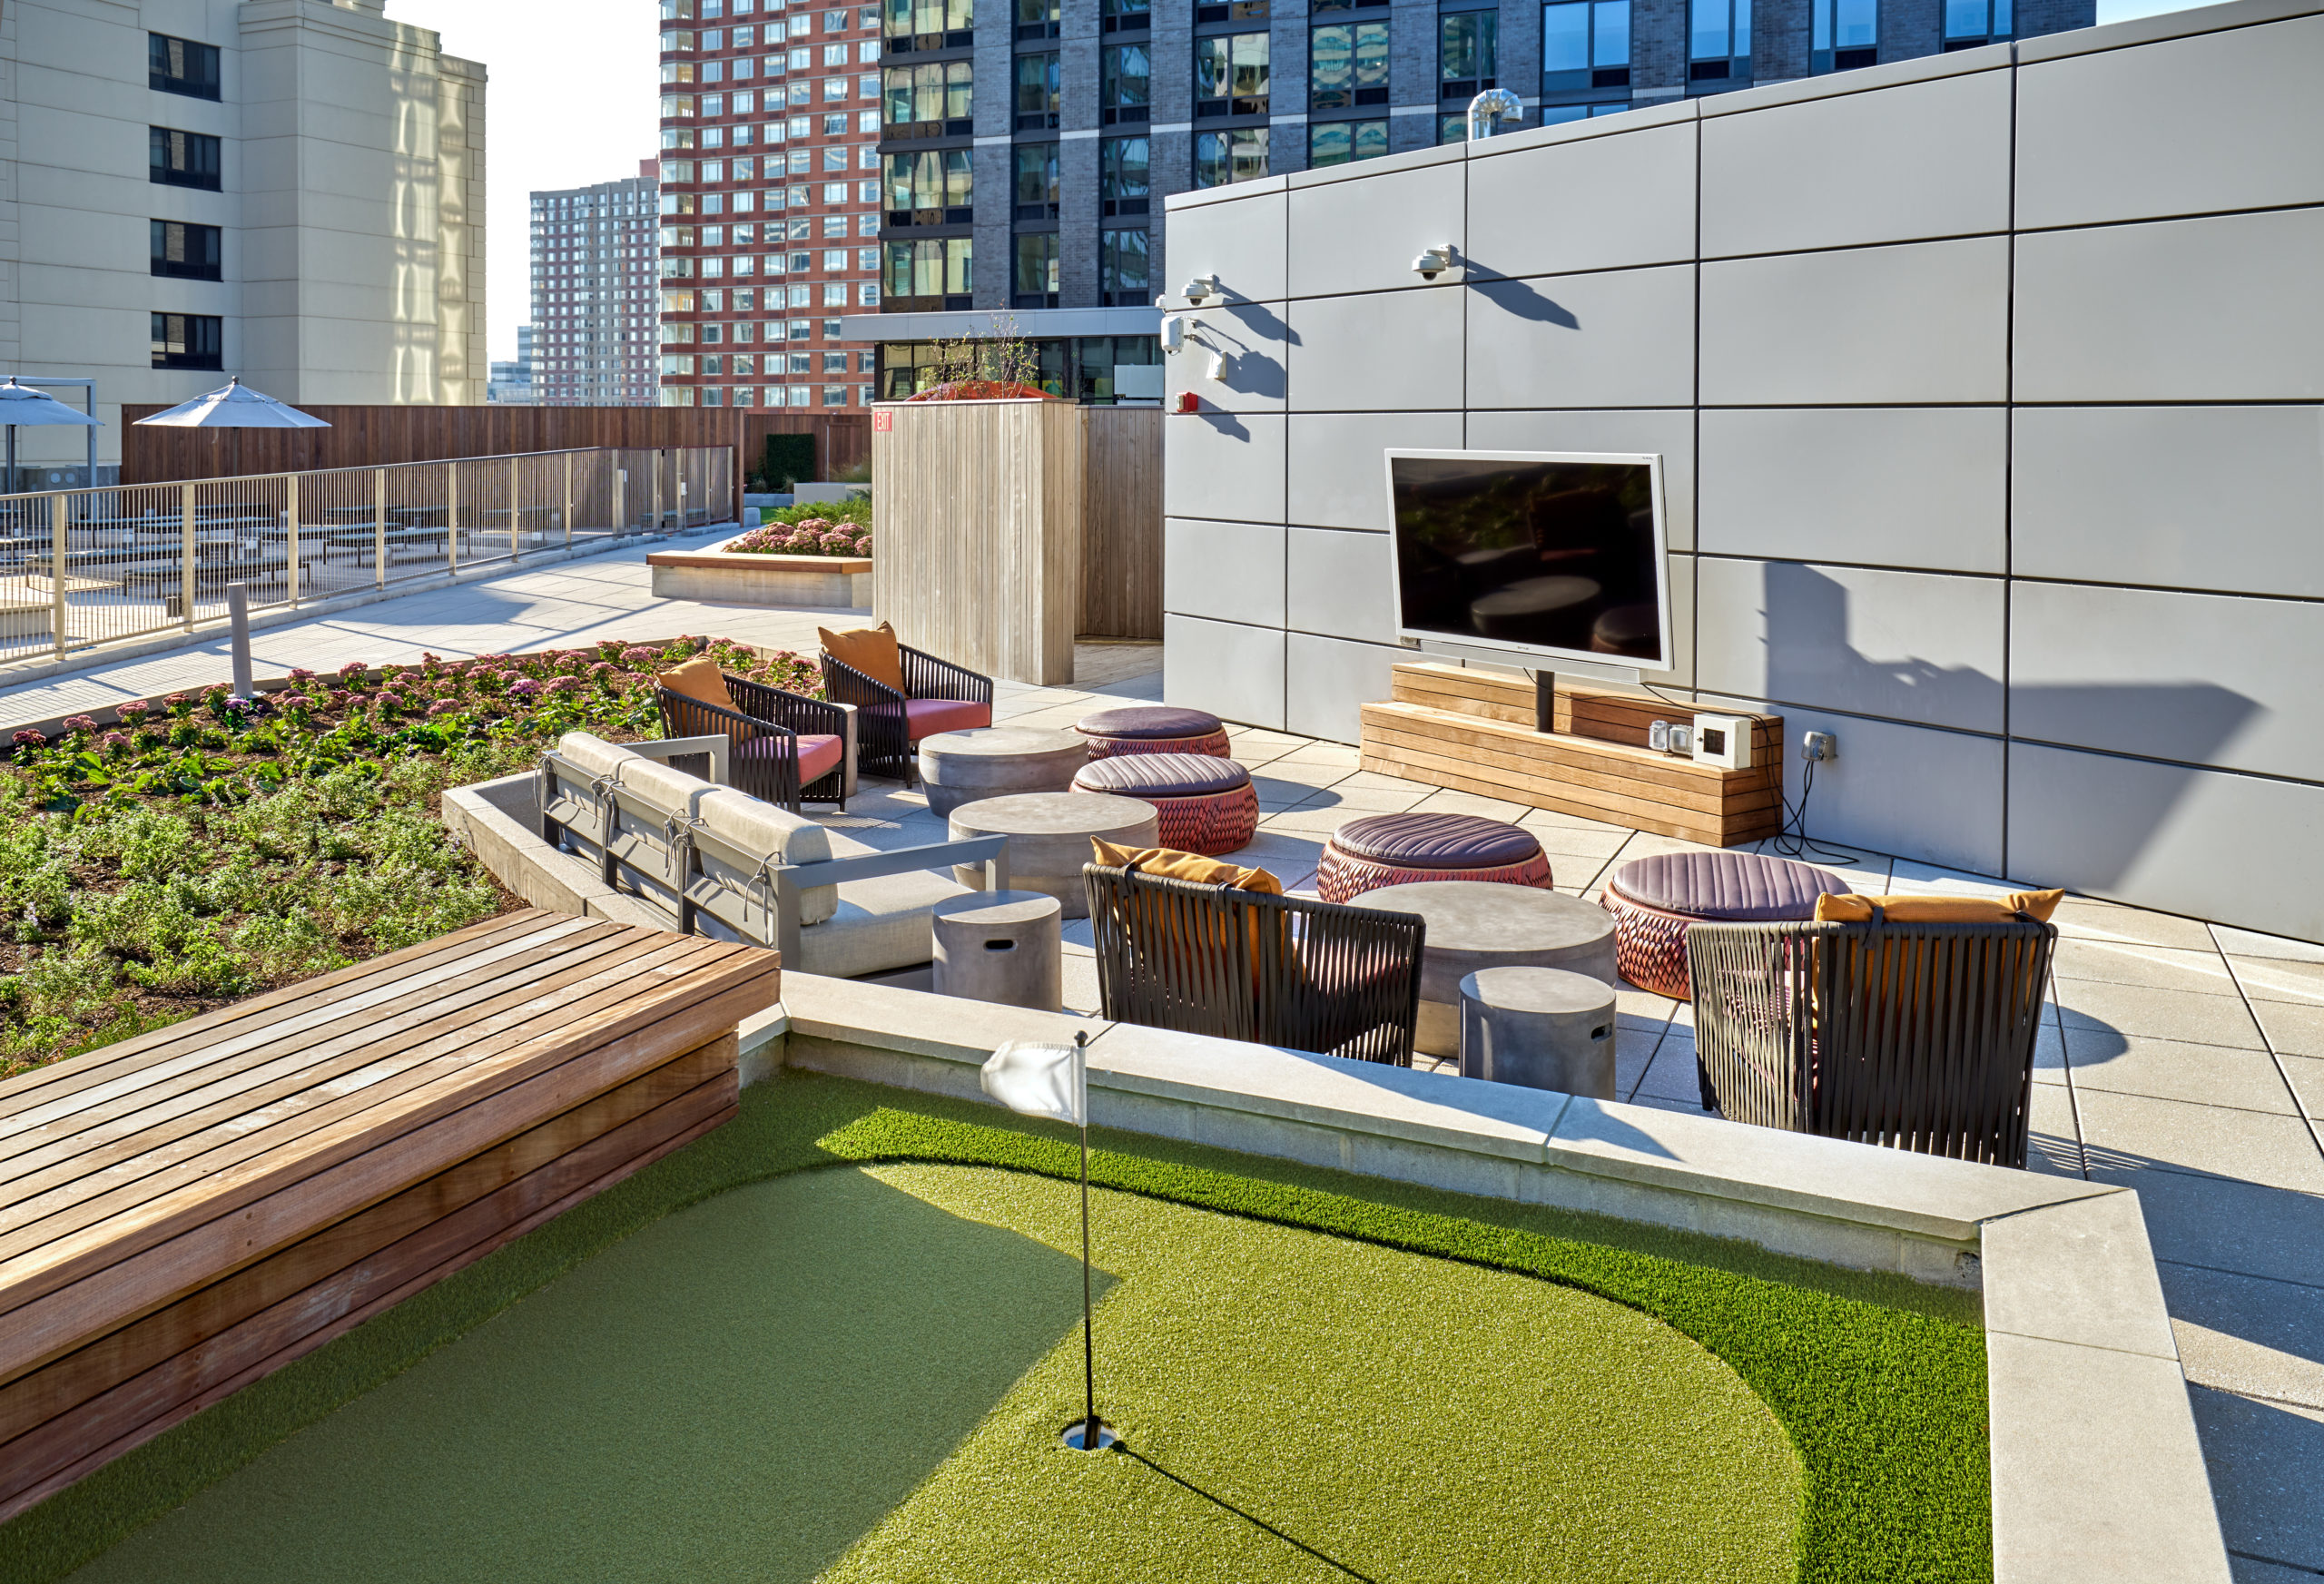 vyv south rooftop putting green